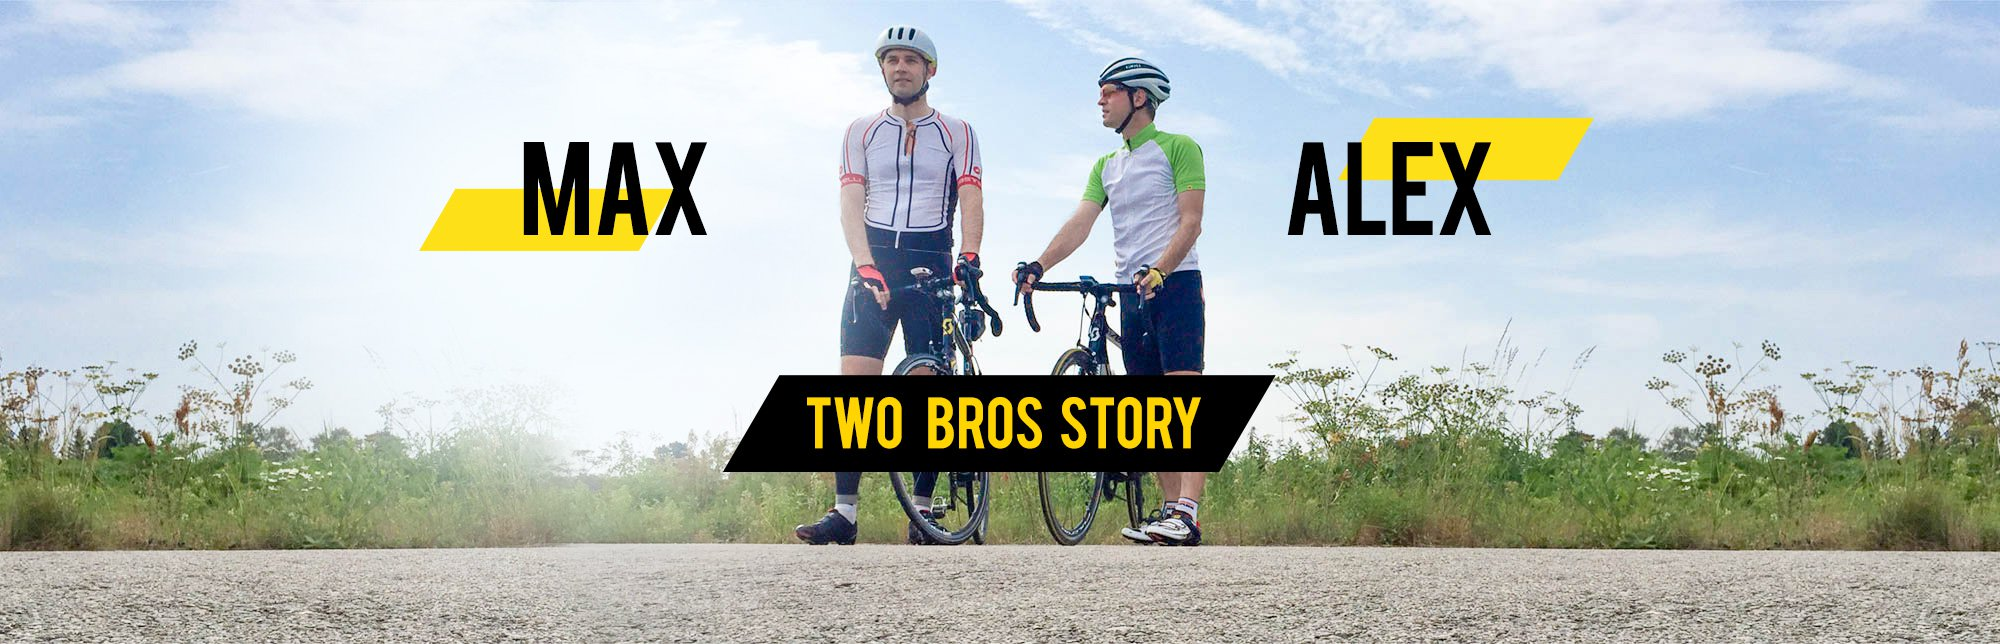 Road bike bros story